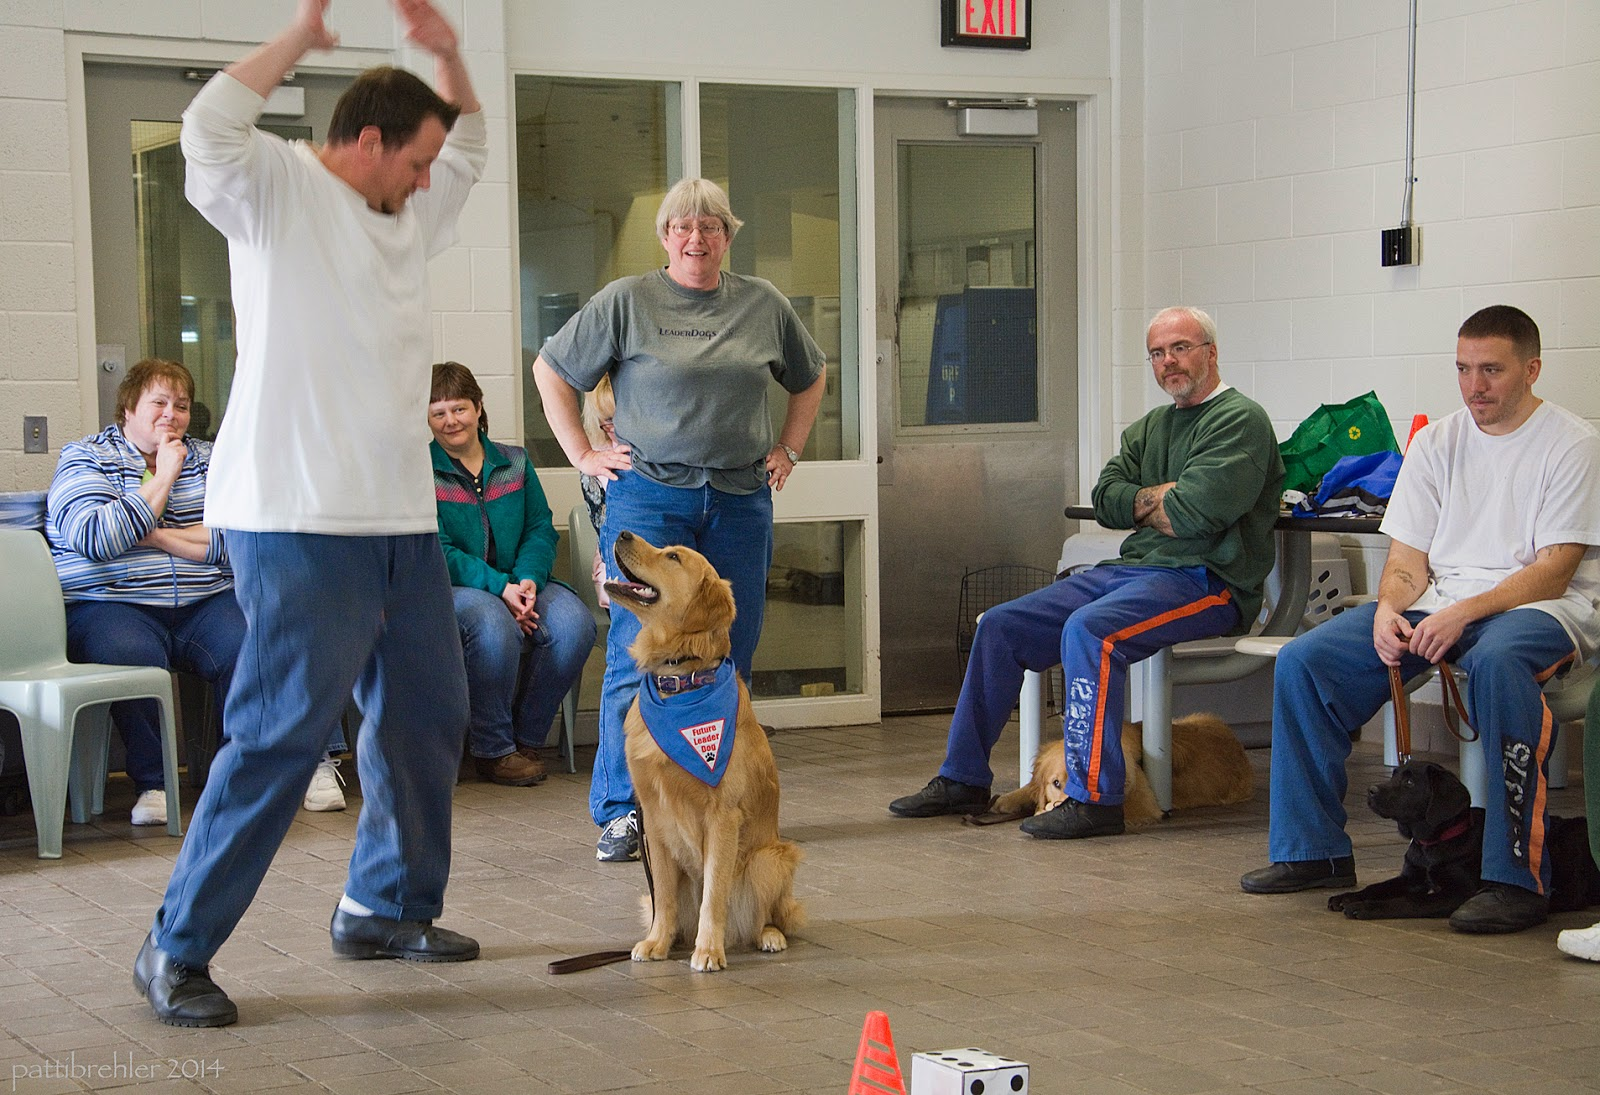 This man is now in mid jumping-jack and he is looking down at the golden retriever, who is looking back at him. The woman standing behind is smiling at the pair. The photo now shows two men sitting on the right side, the same man with the golden, and the man with the black lab, who is also lying niced under him. There are two other women sitting down directly behind the man jumping.